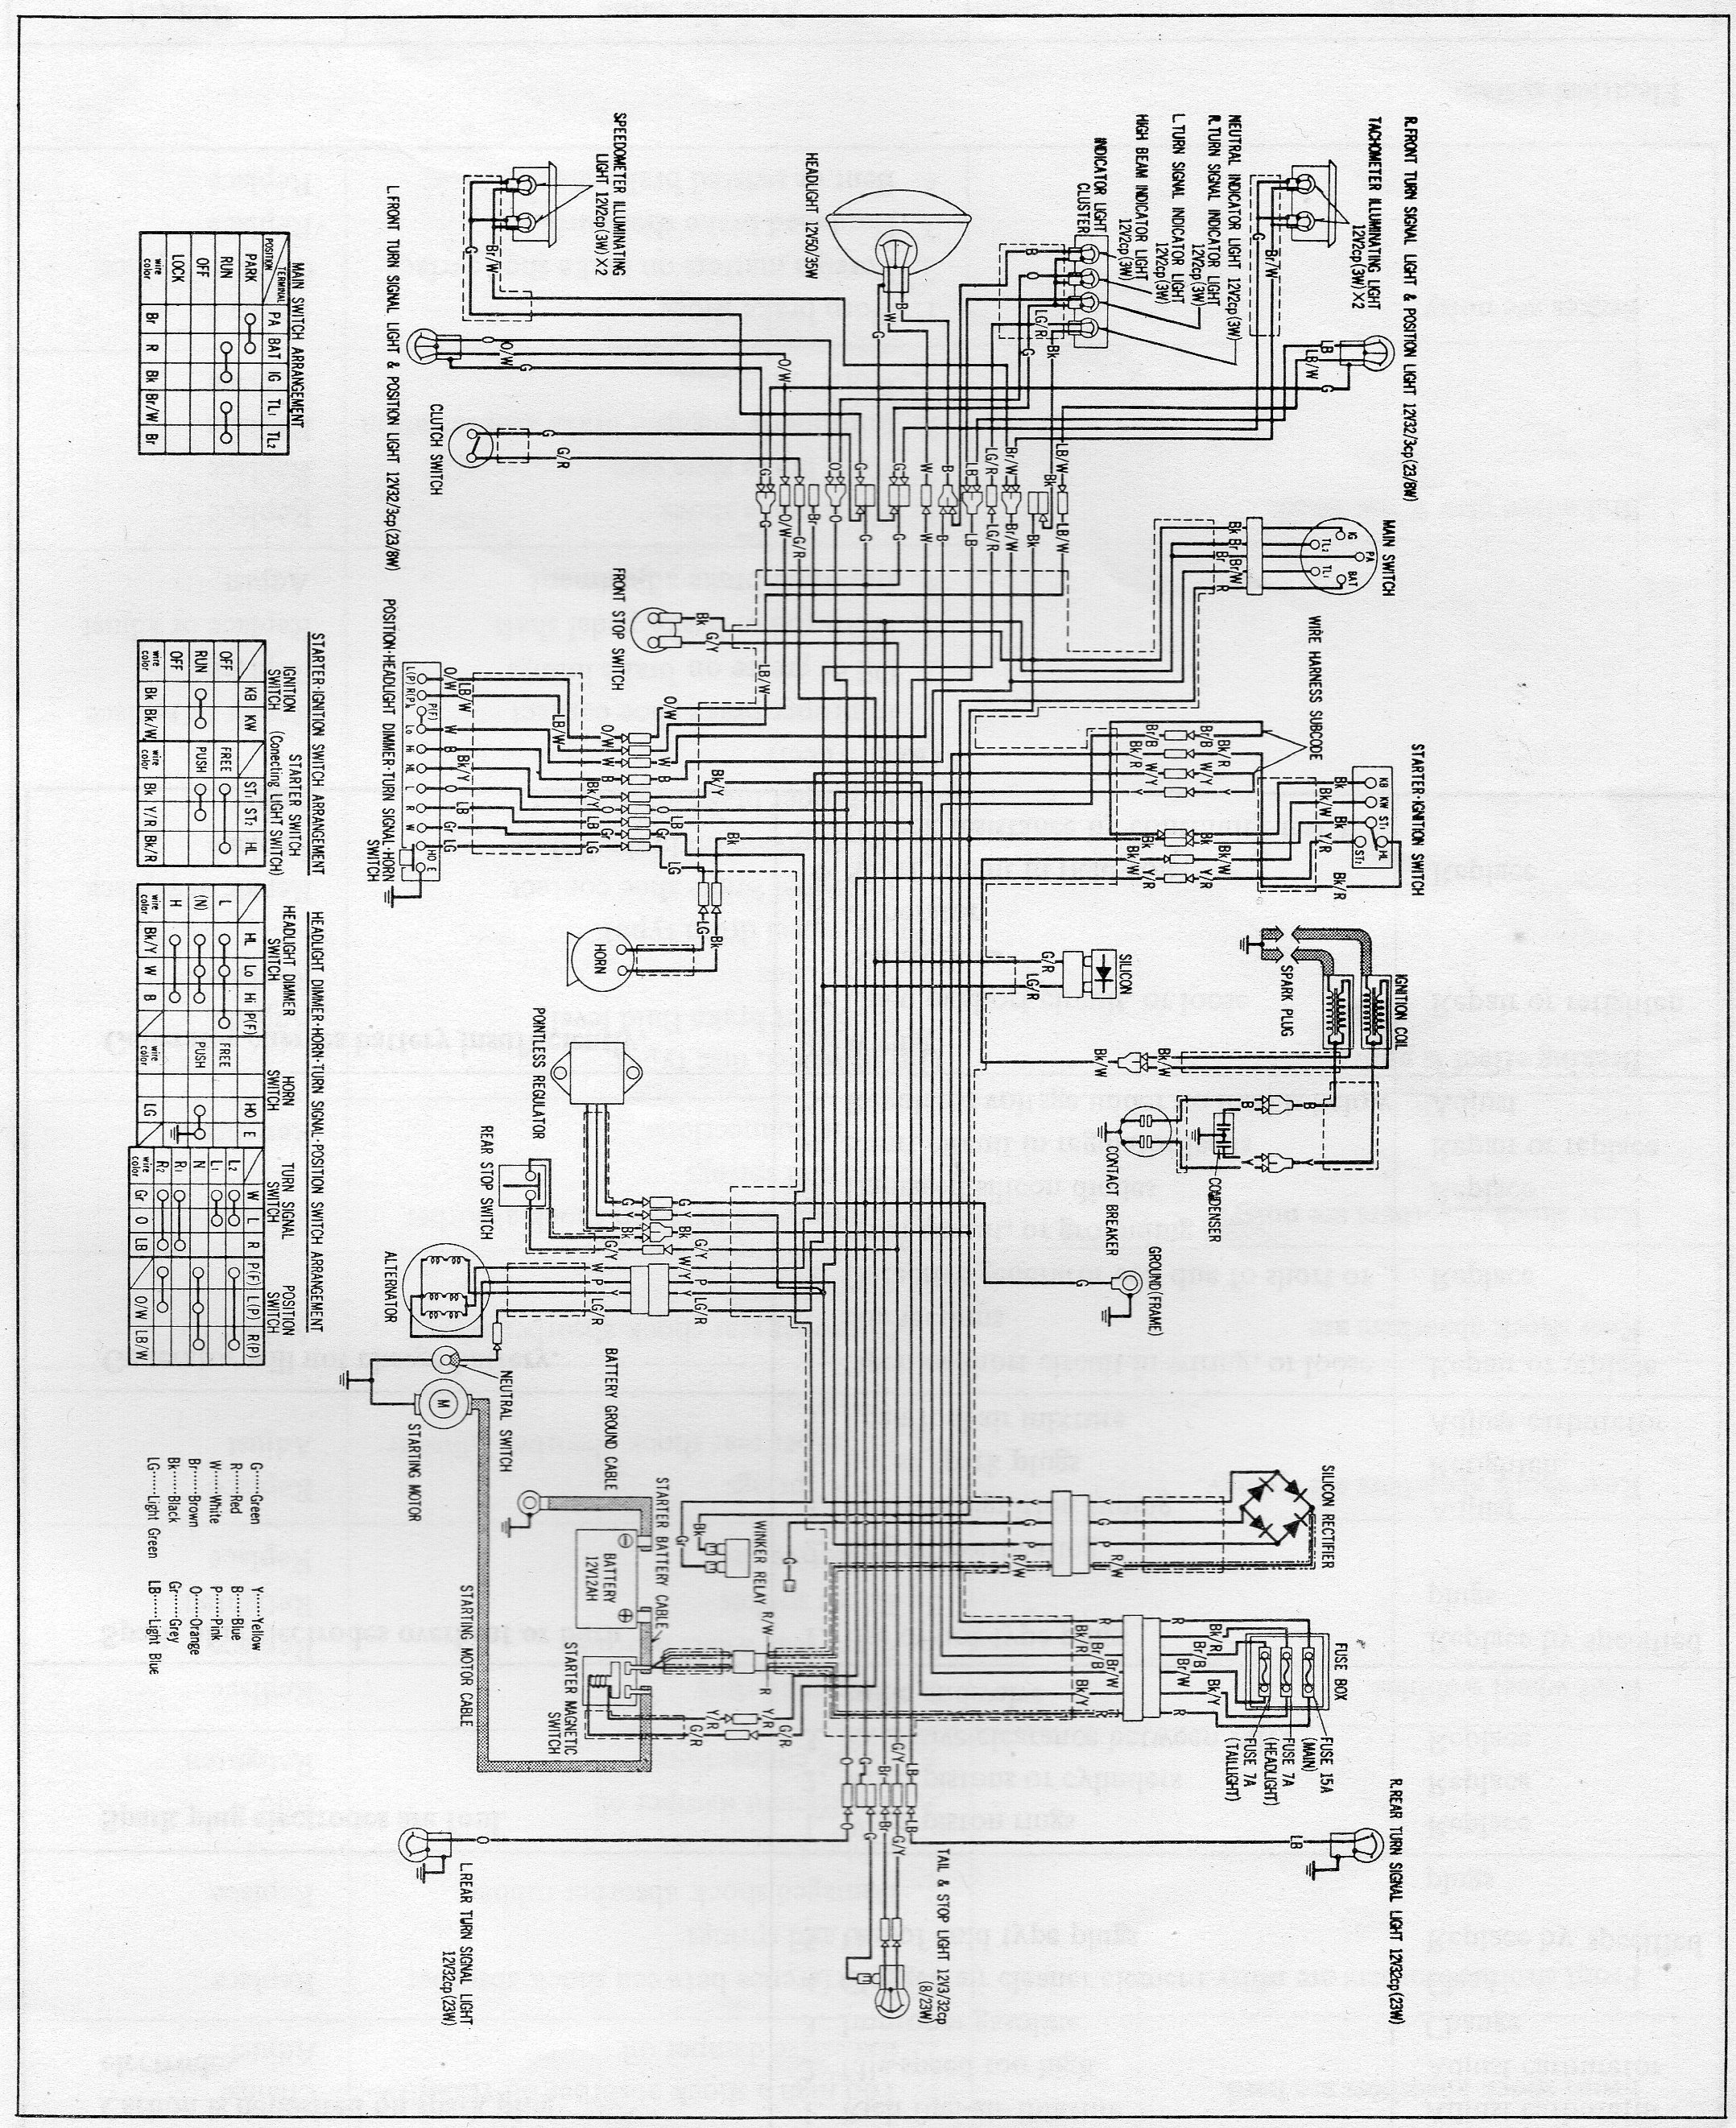 diagram] veracruz wiring diagram full version hd quality wiring diagram -  coastdiagramleg.gdtoscana.it  gdtoscana.it